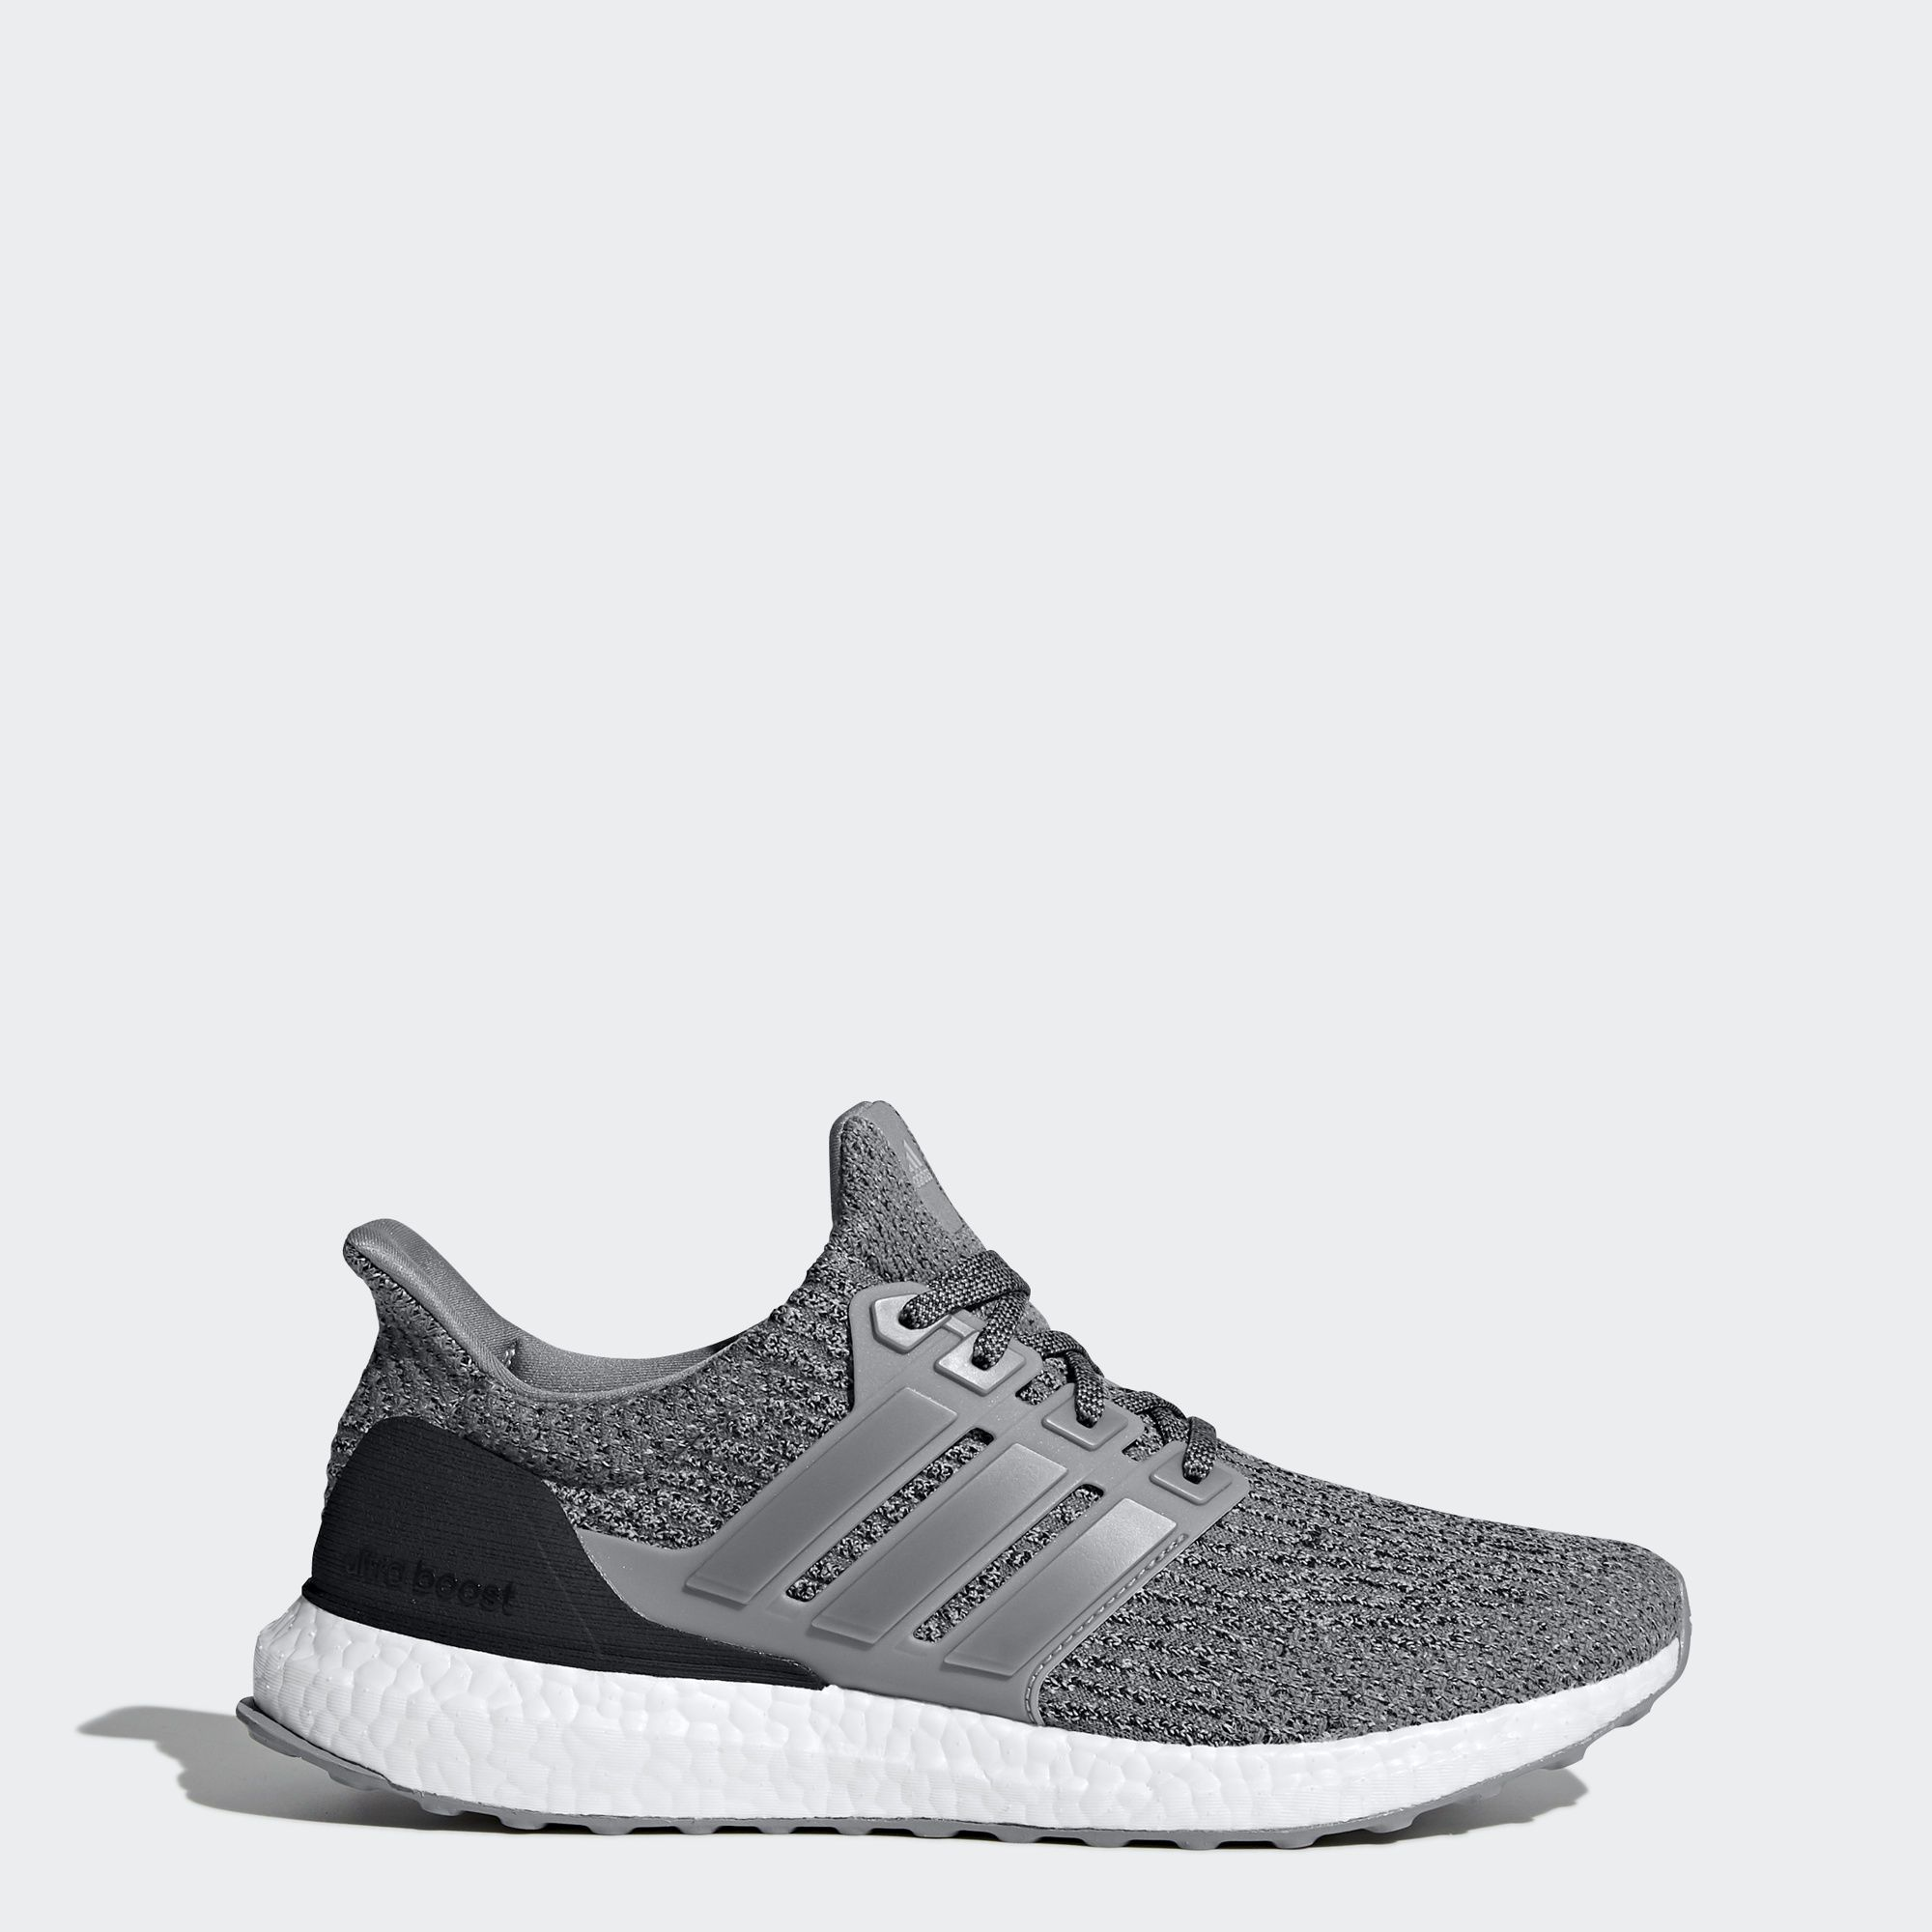 brand new 0359c 9e41b Adidas Ultra Boost Grey Three  125 Shipped on eBay (Retail  180)  sponsored